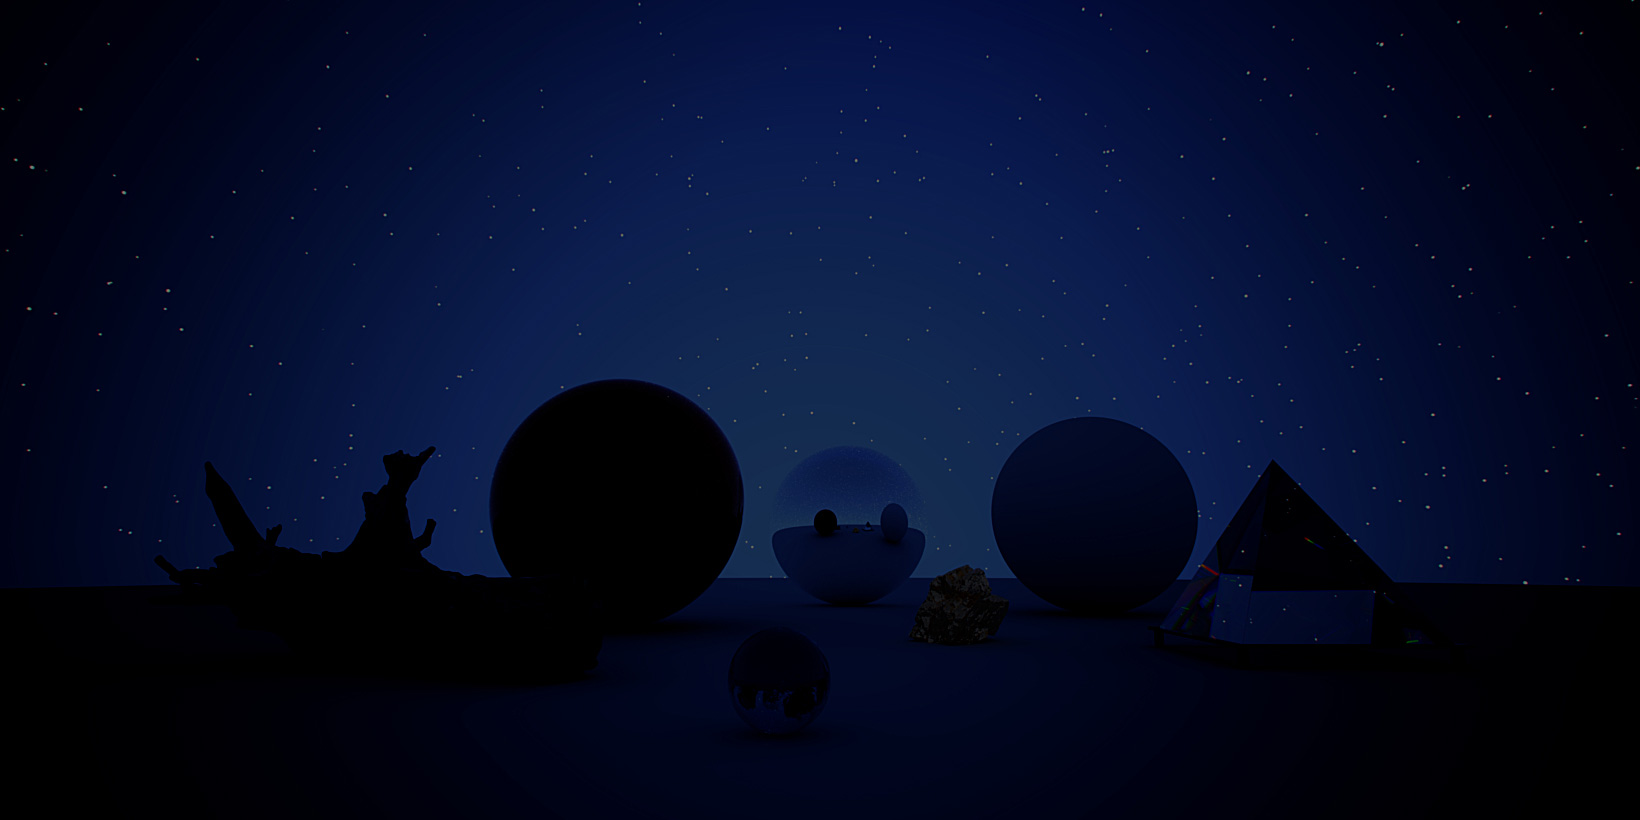 CG HDRI / Winter Collection Skies 02 from helloluxx